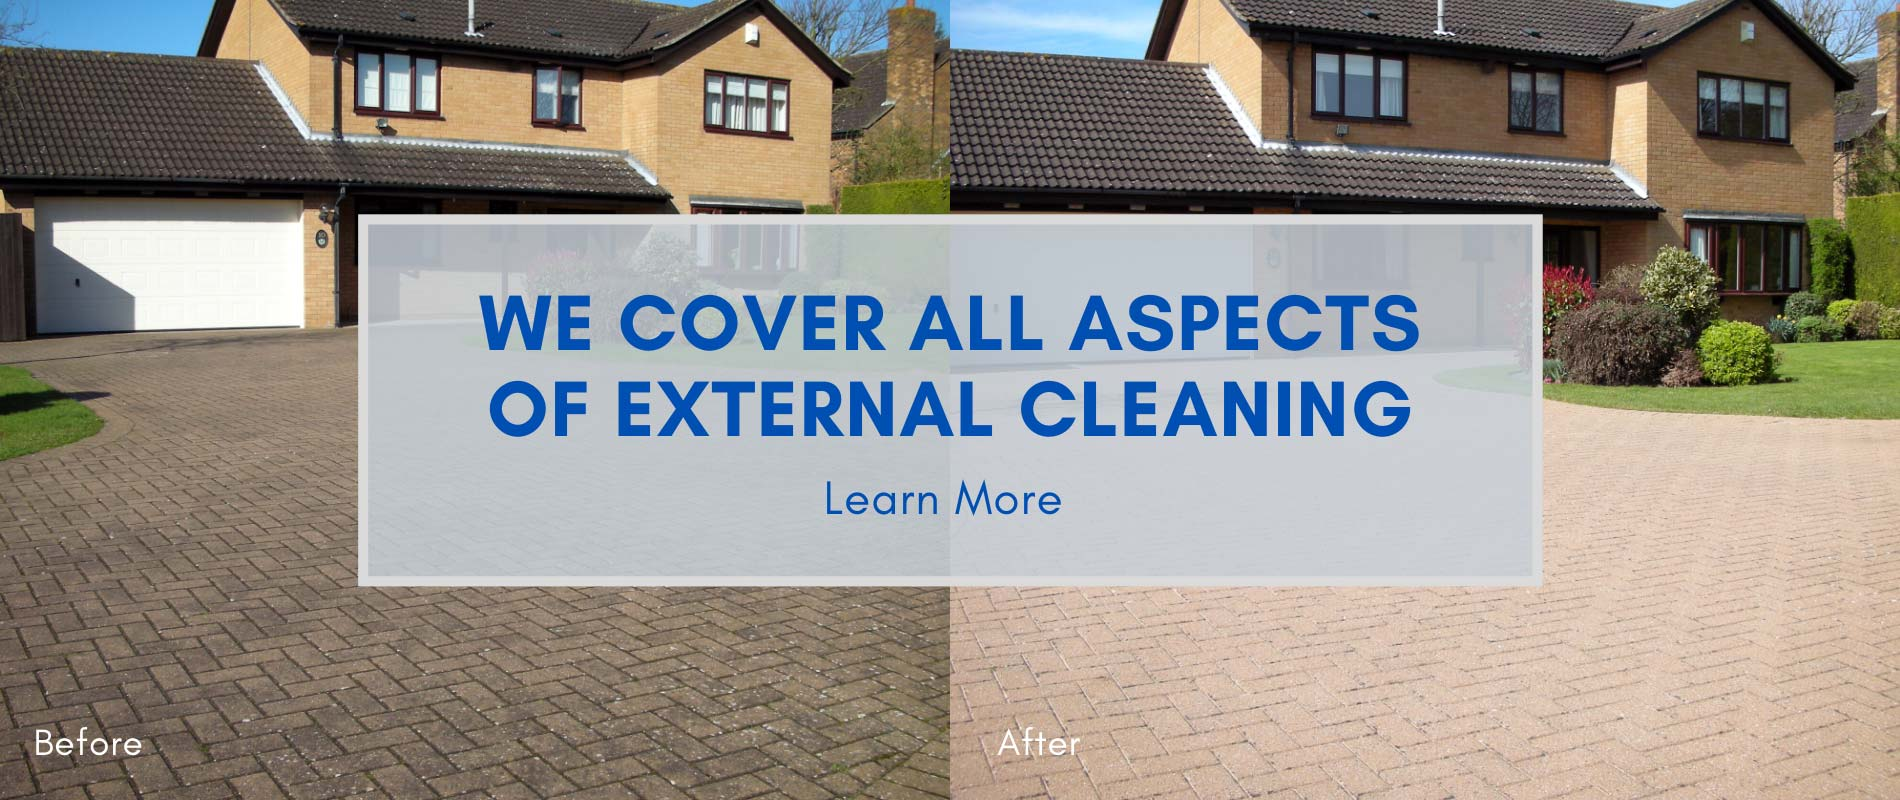 We cover all aspects of external cleaning